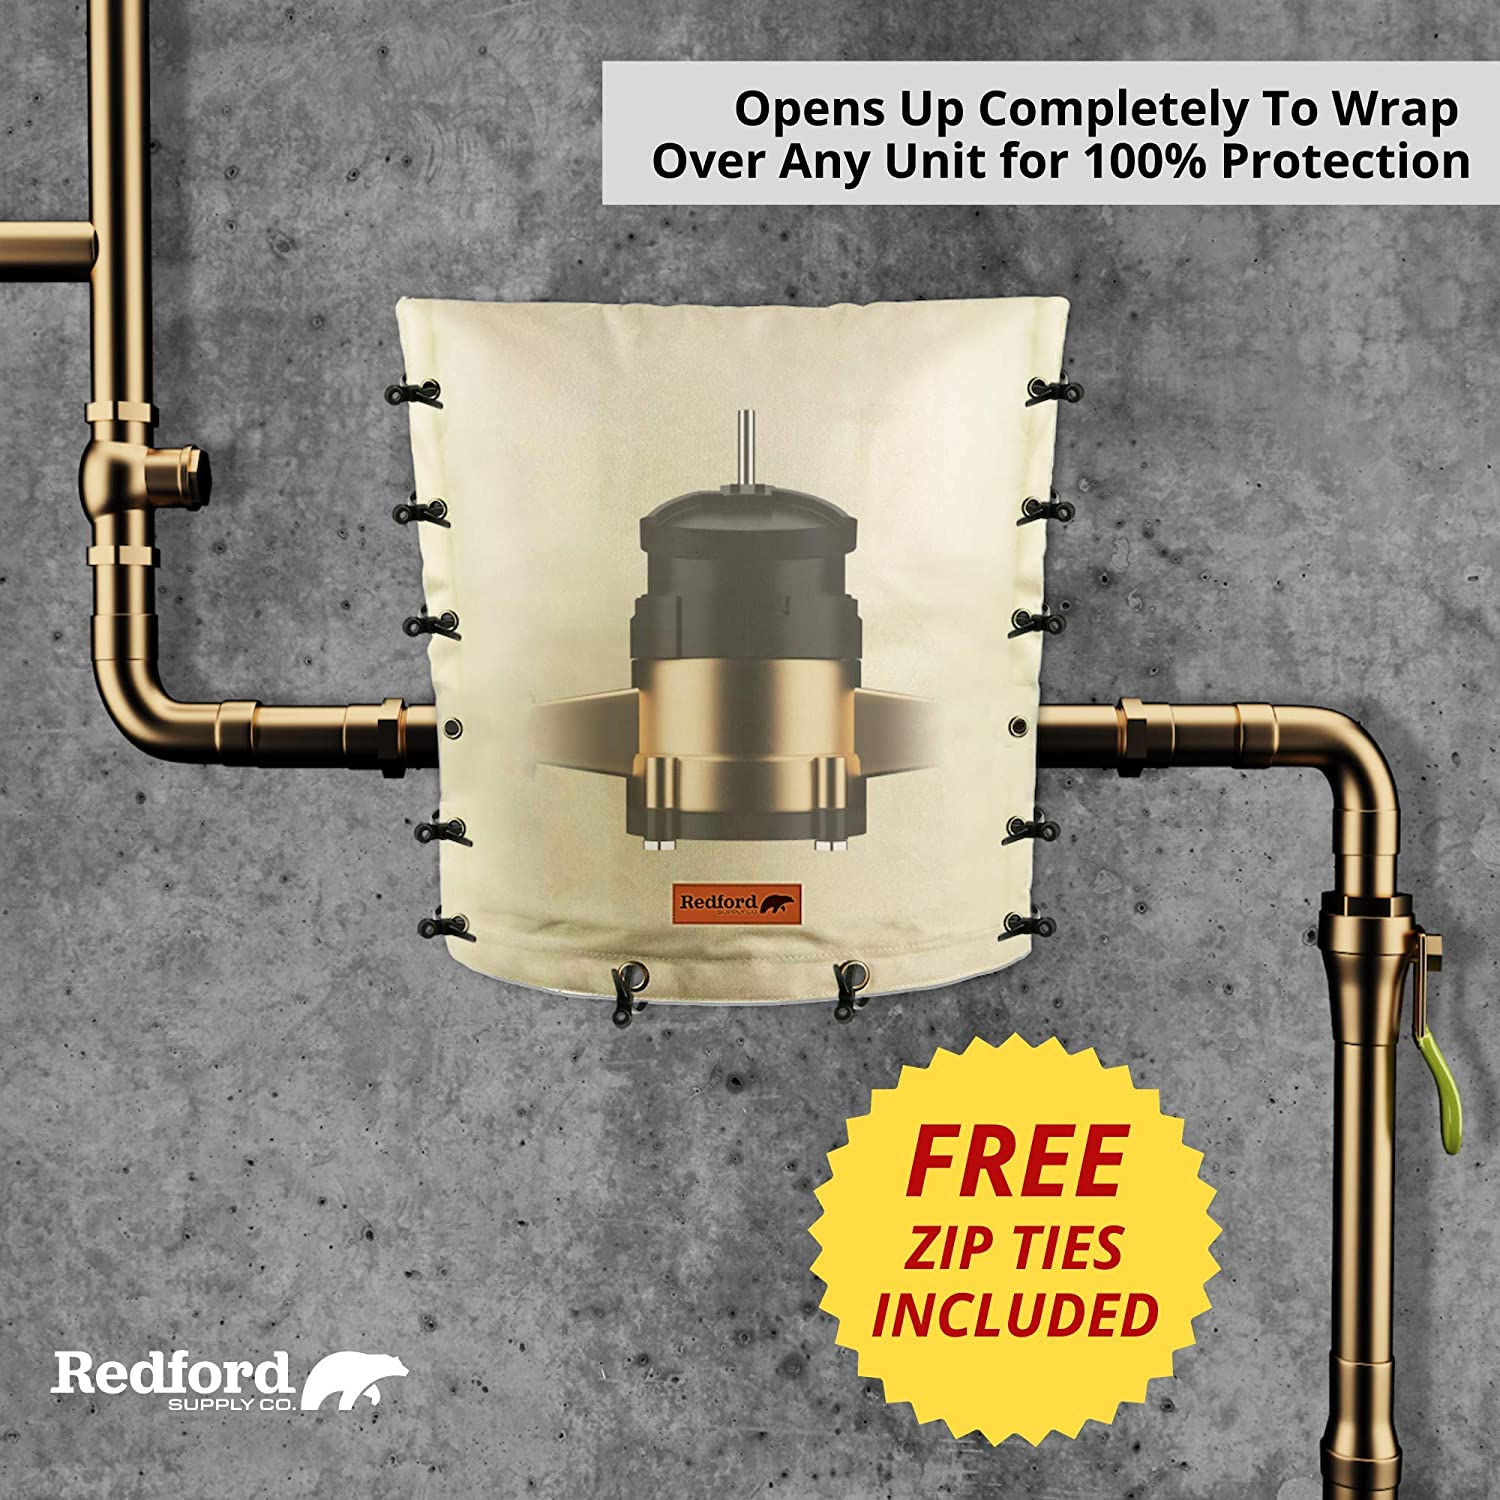 Redford Supply Customizable Backflow Preventer Insulation Outdoor Pipe Cover for Winter Freeze Protection Well Cover Irrigation Waterproof Pouch 14W x 18H, Beige Sprinkler Valve Cover